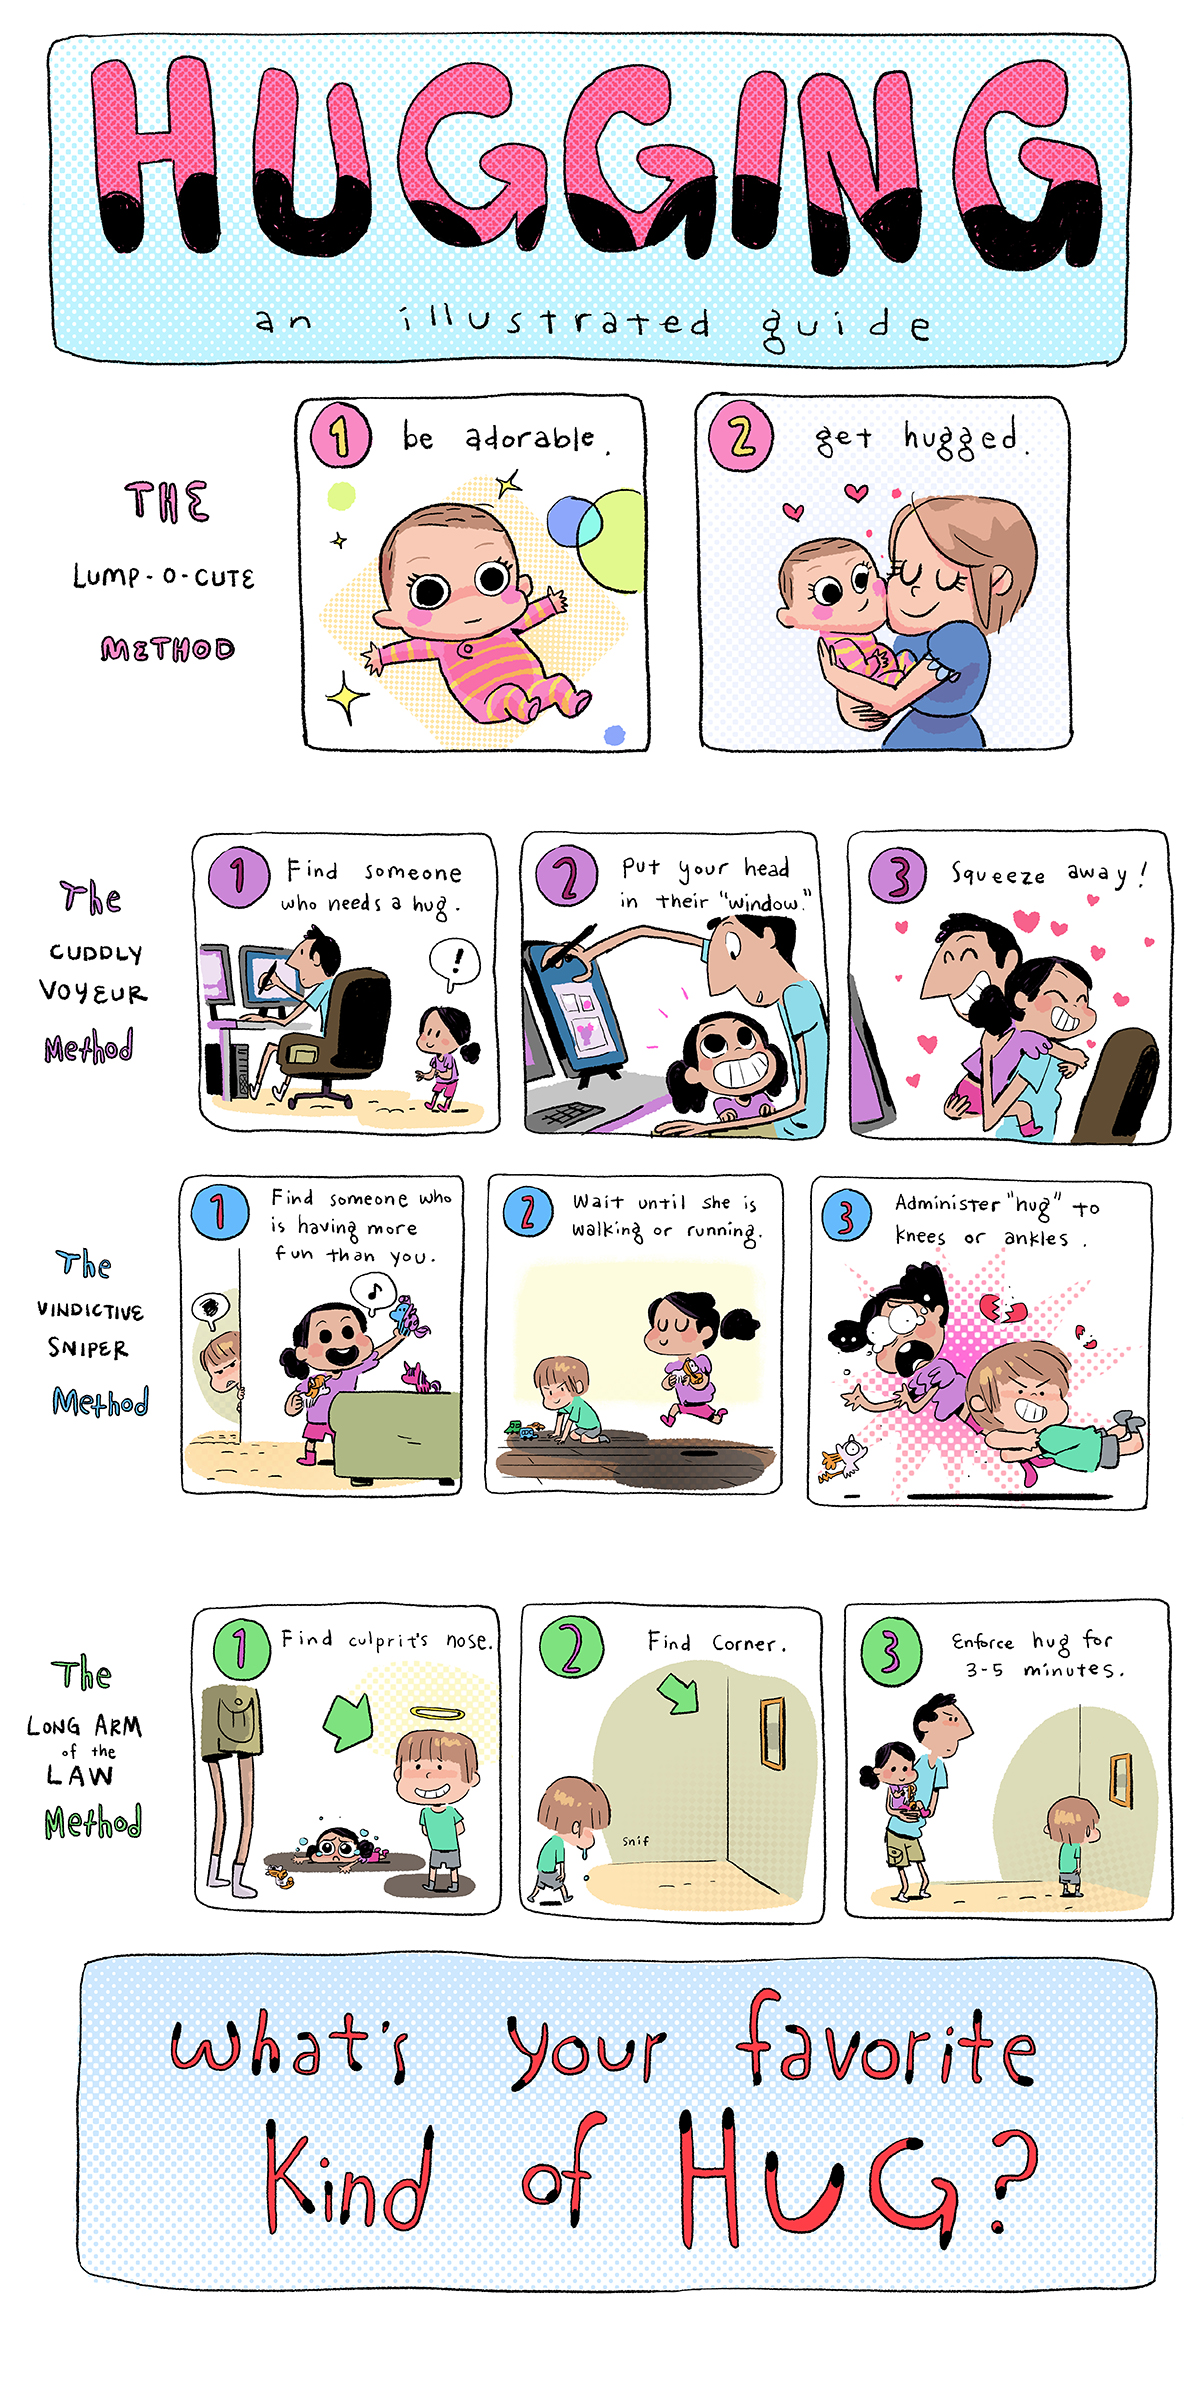 HUGGING: An Illustrated Guide by AnthonyHolden